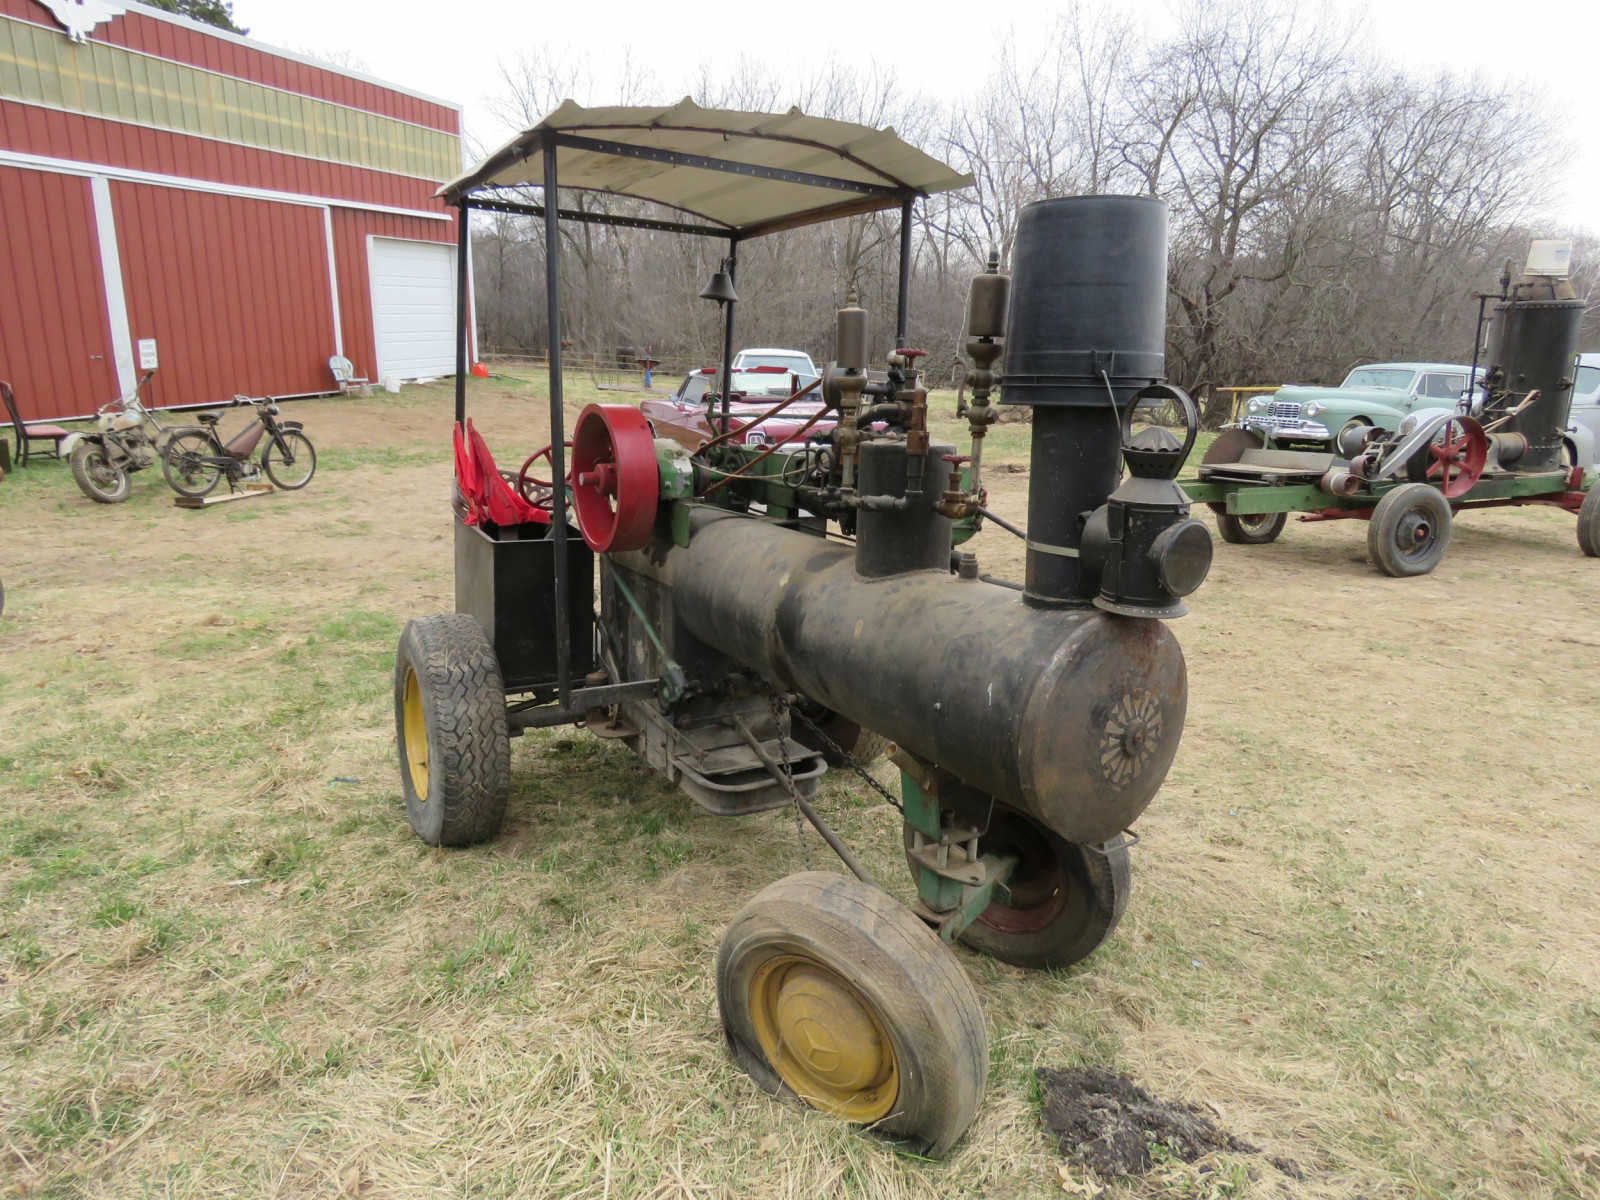 Vintage Handmade Steam Traction Tractor - Image 3